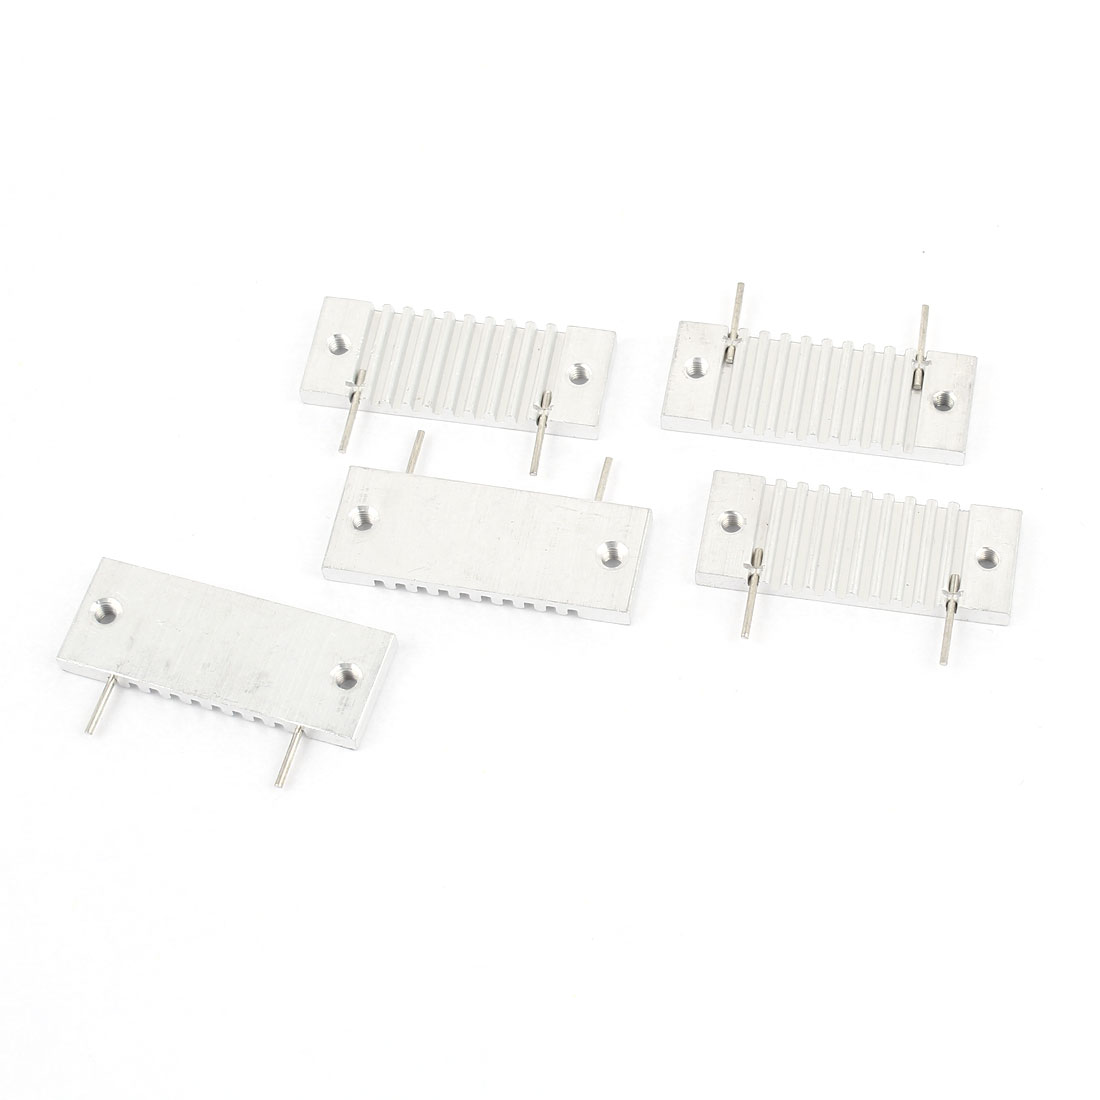 5 Pcs Silver Tone Aluminum Radiator Heat Sink Heatsink 37x14x3mm